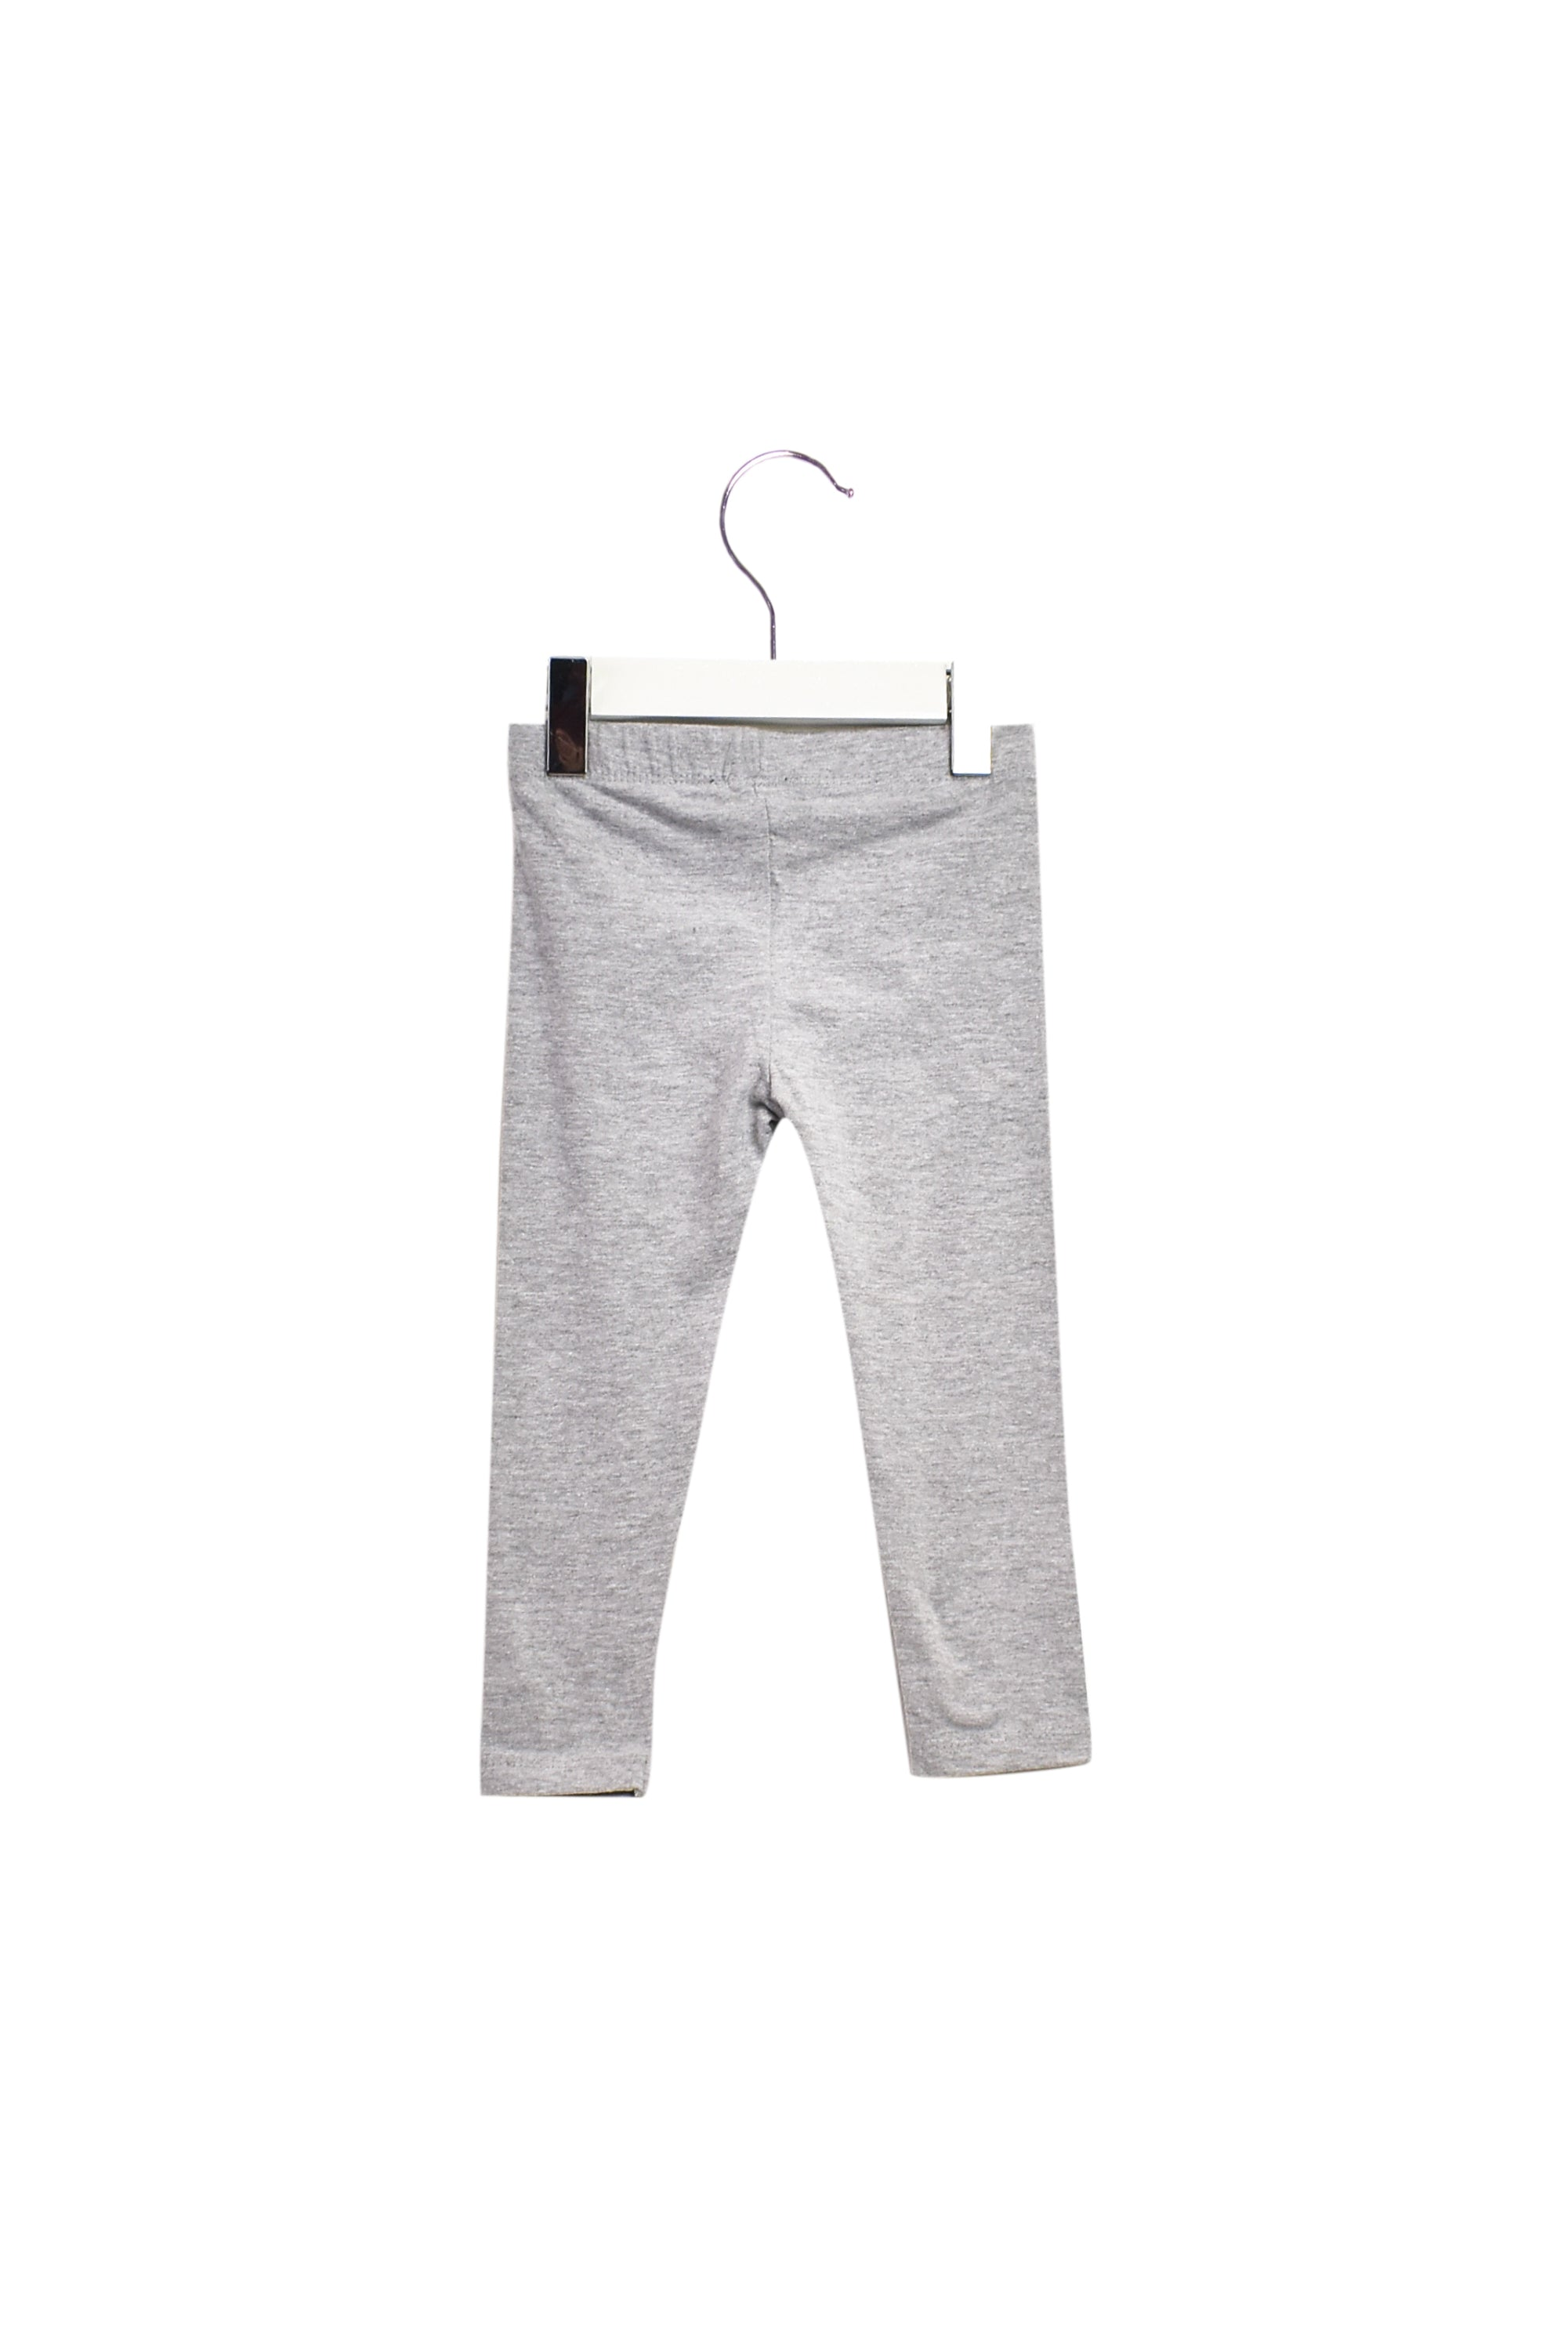 10023481 DKNY Kids~Leggings 2T at Retykle